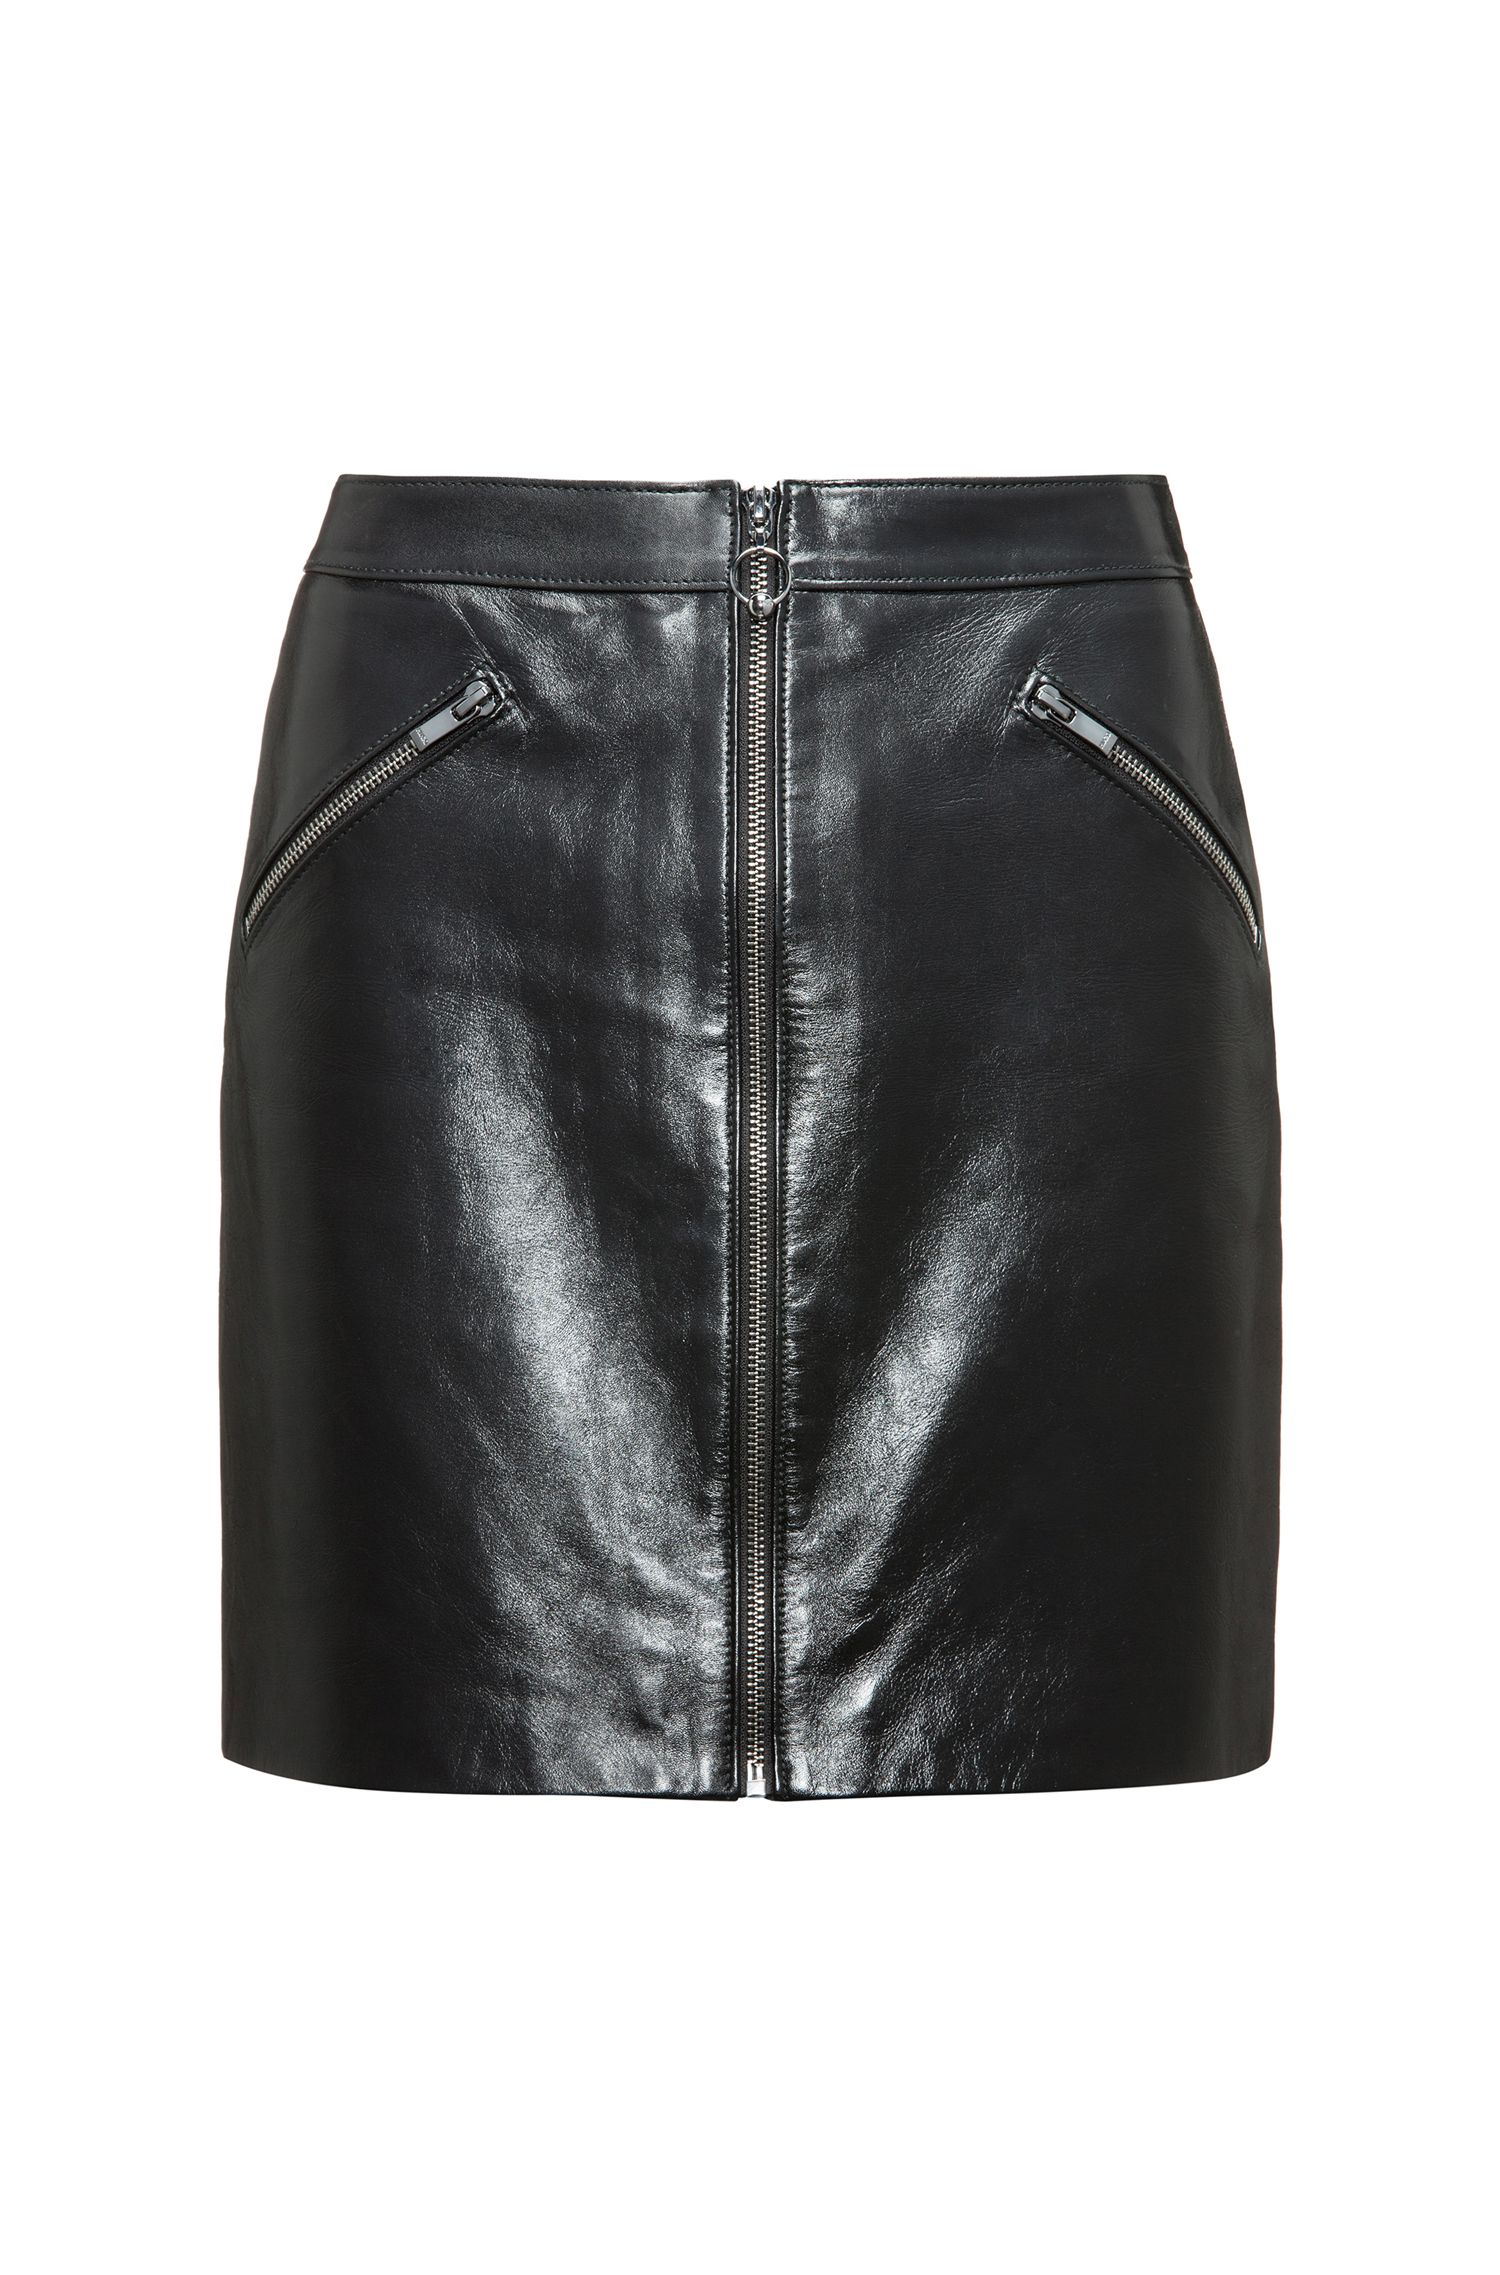 Zip-front mini skirt in high-shine napa leather